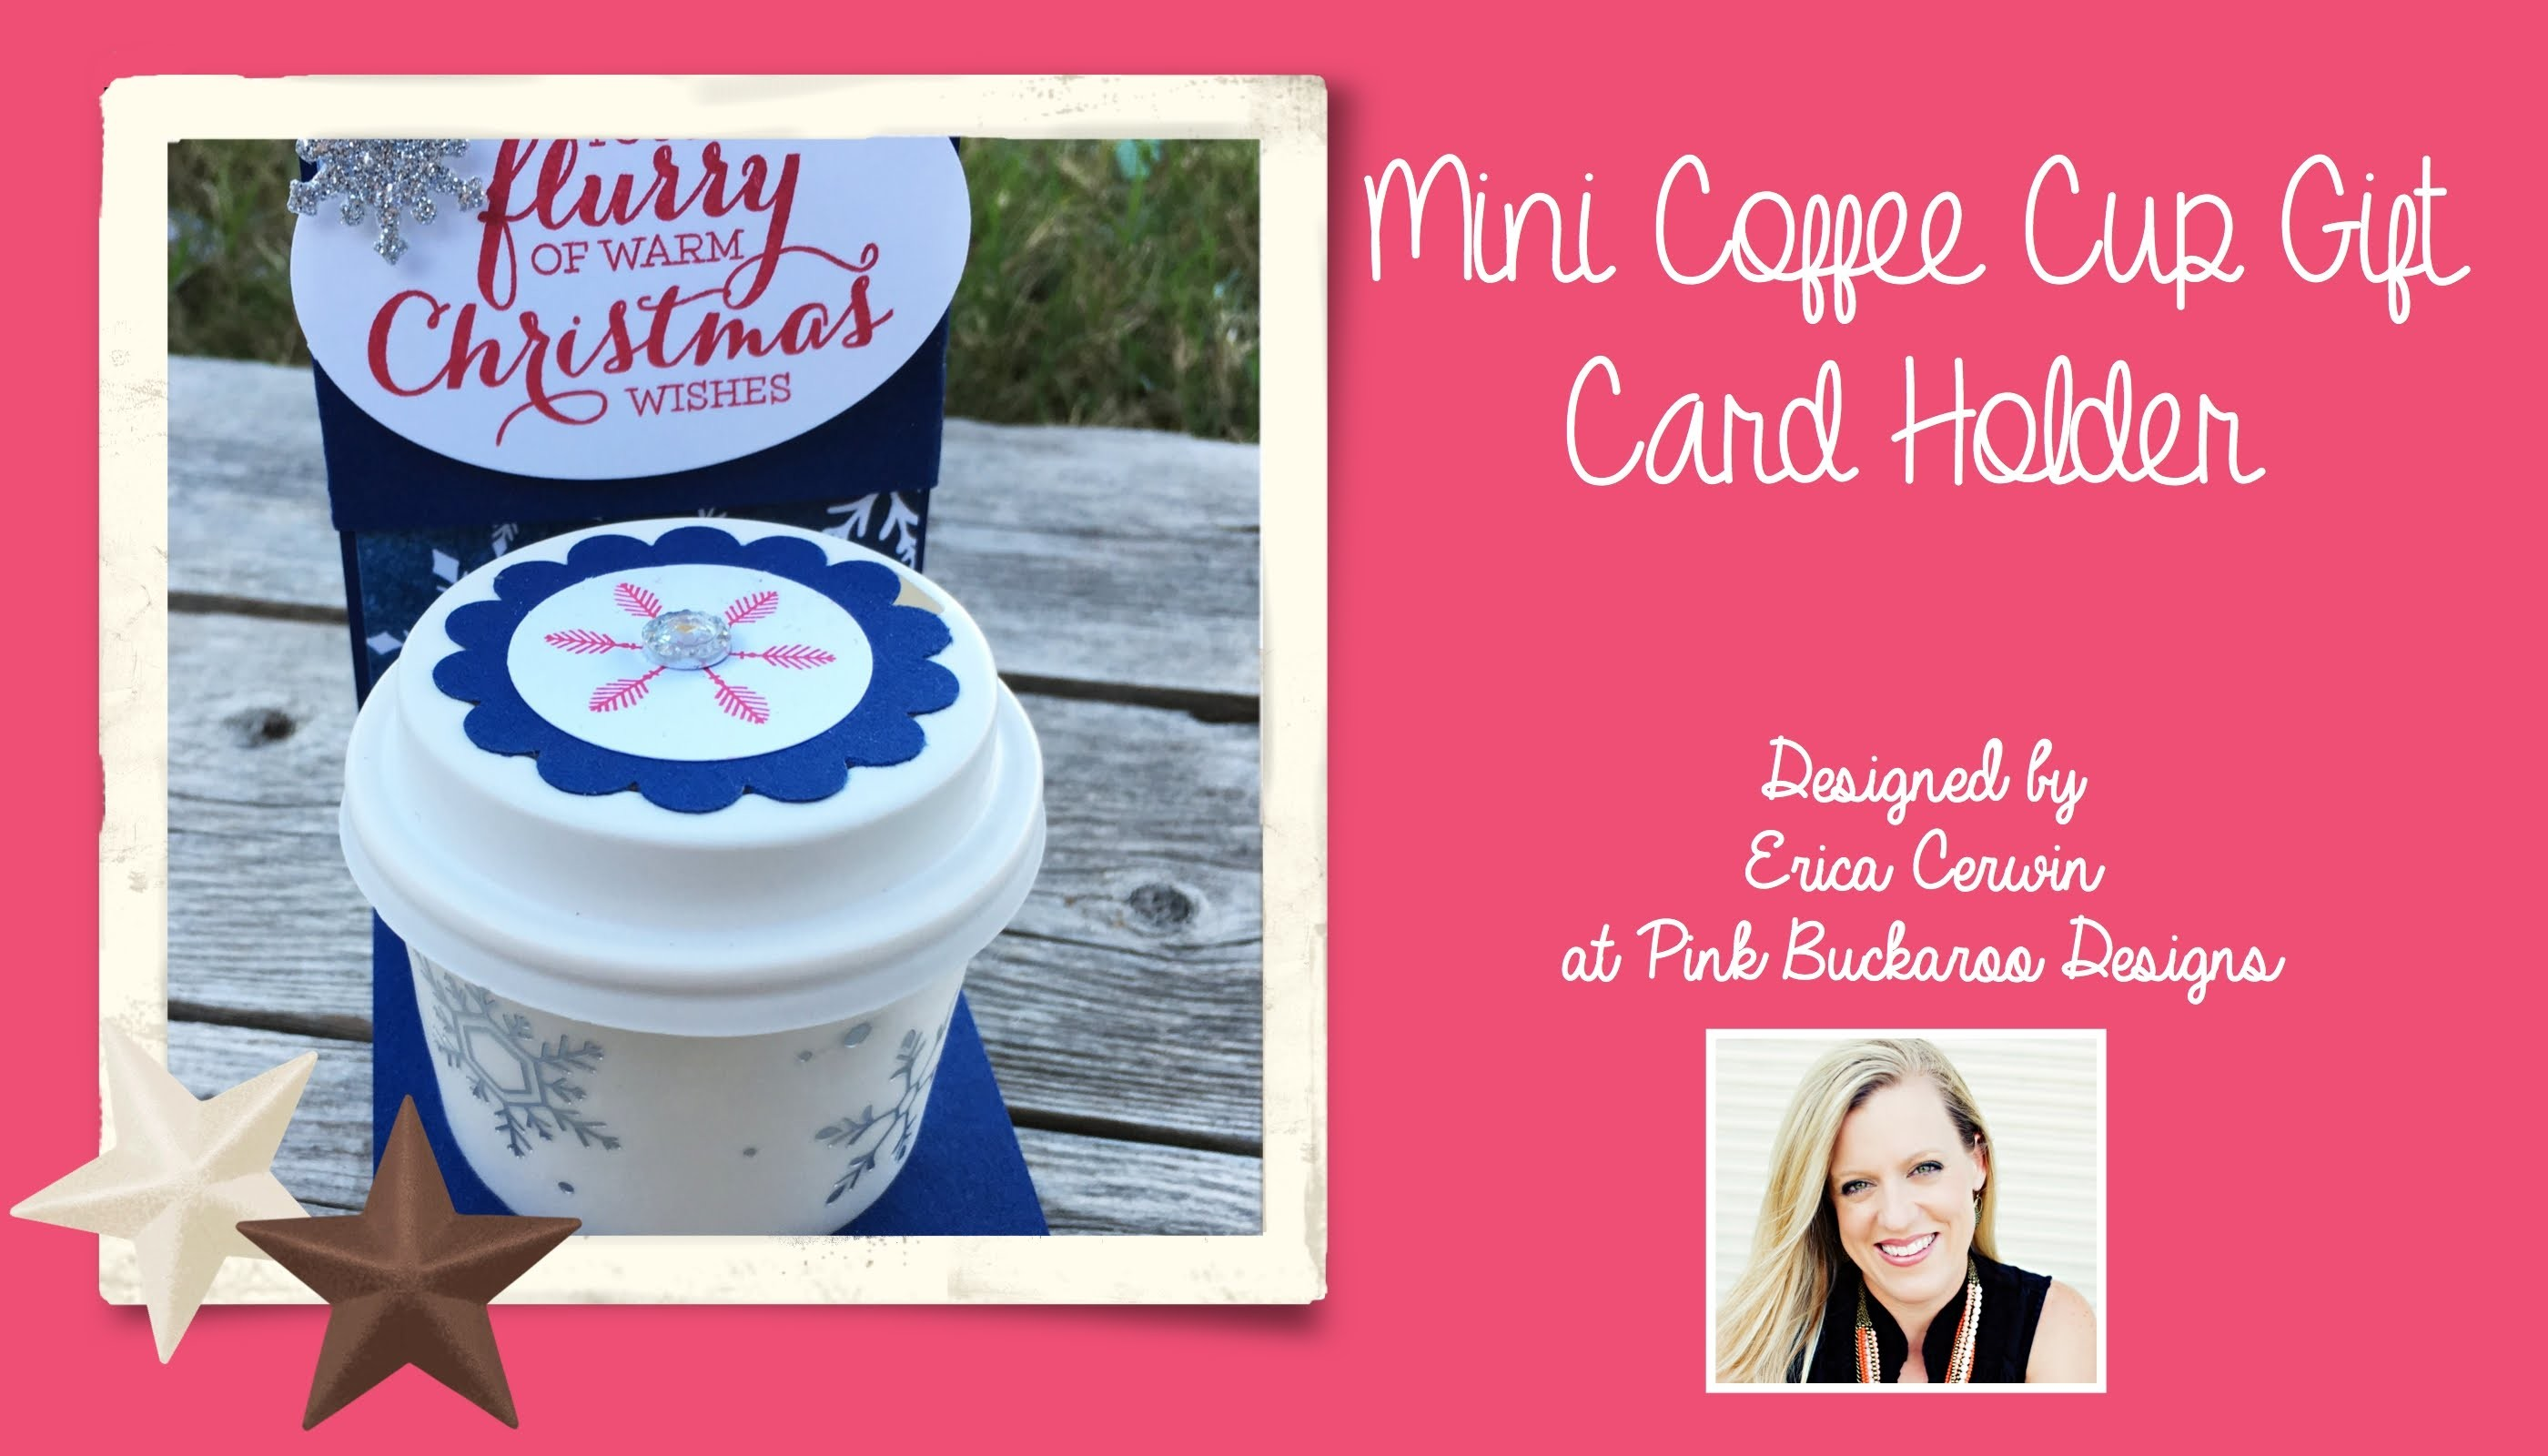 Mini Coffee Cup Gift Card Holder